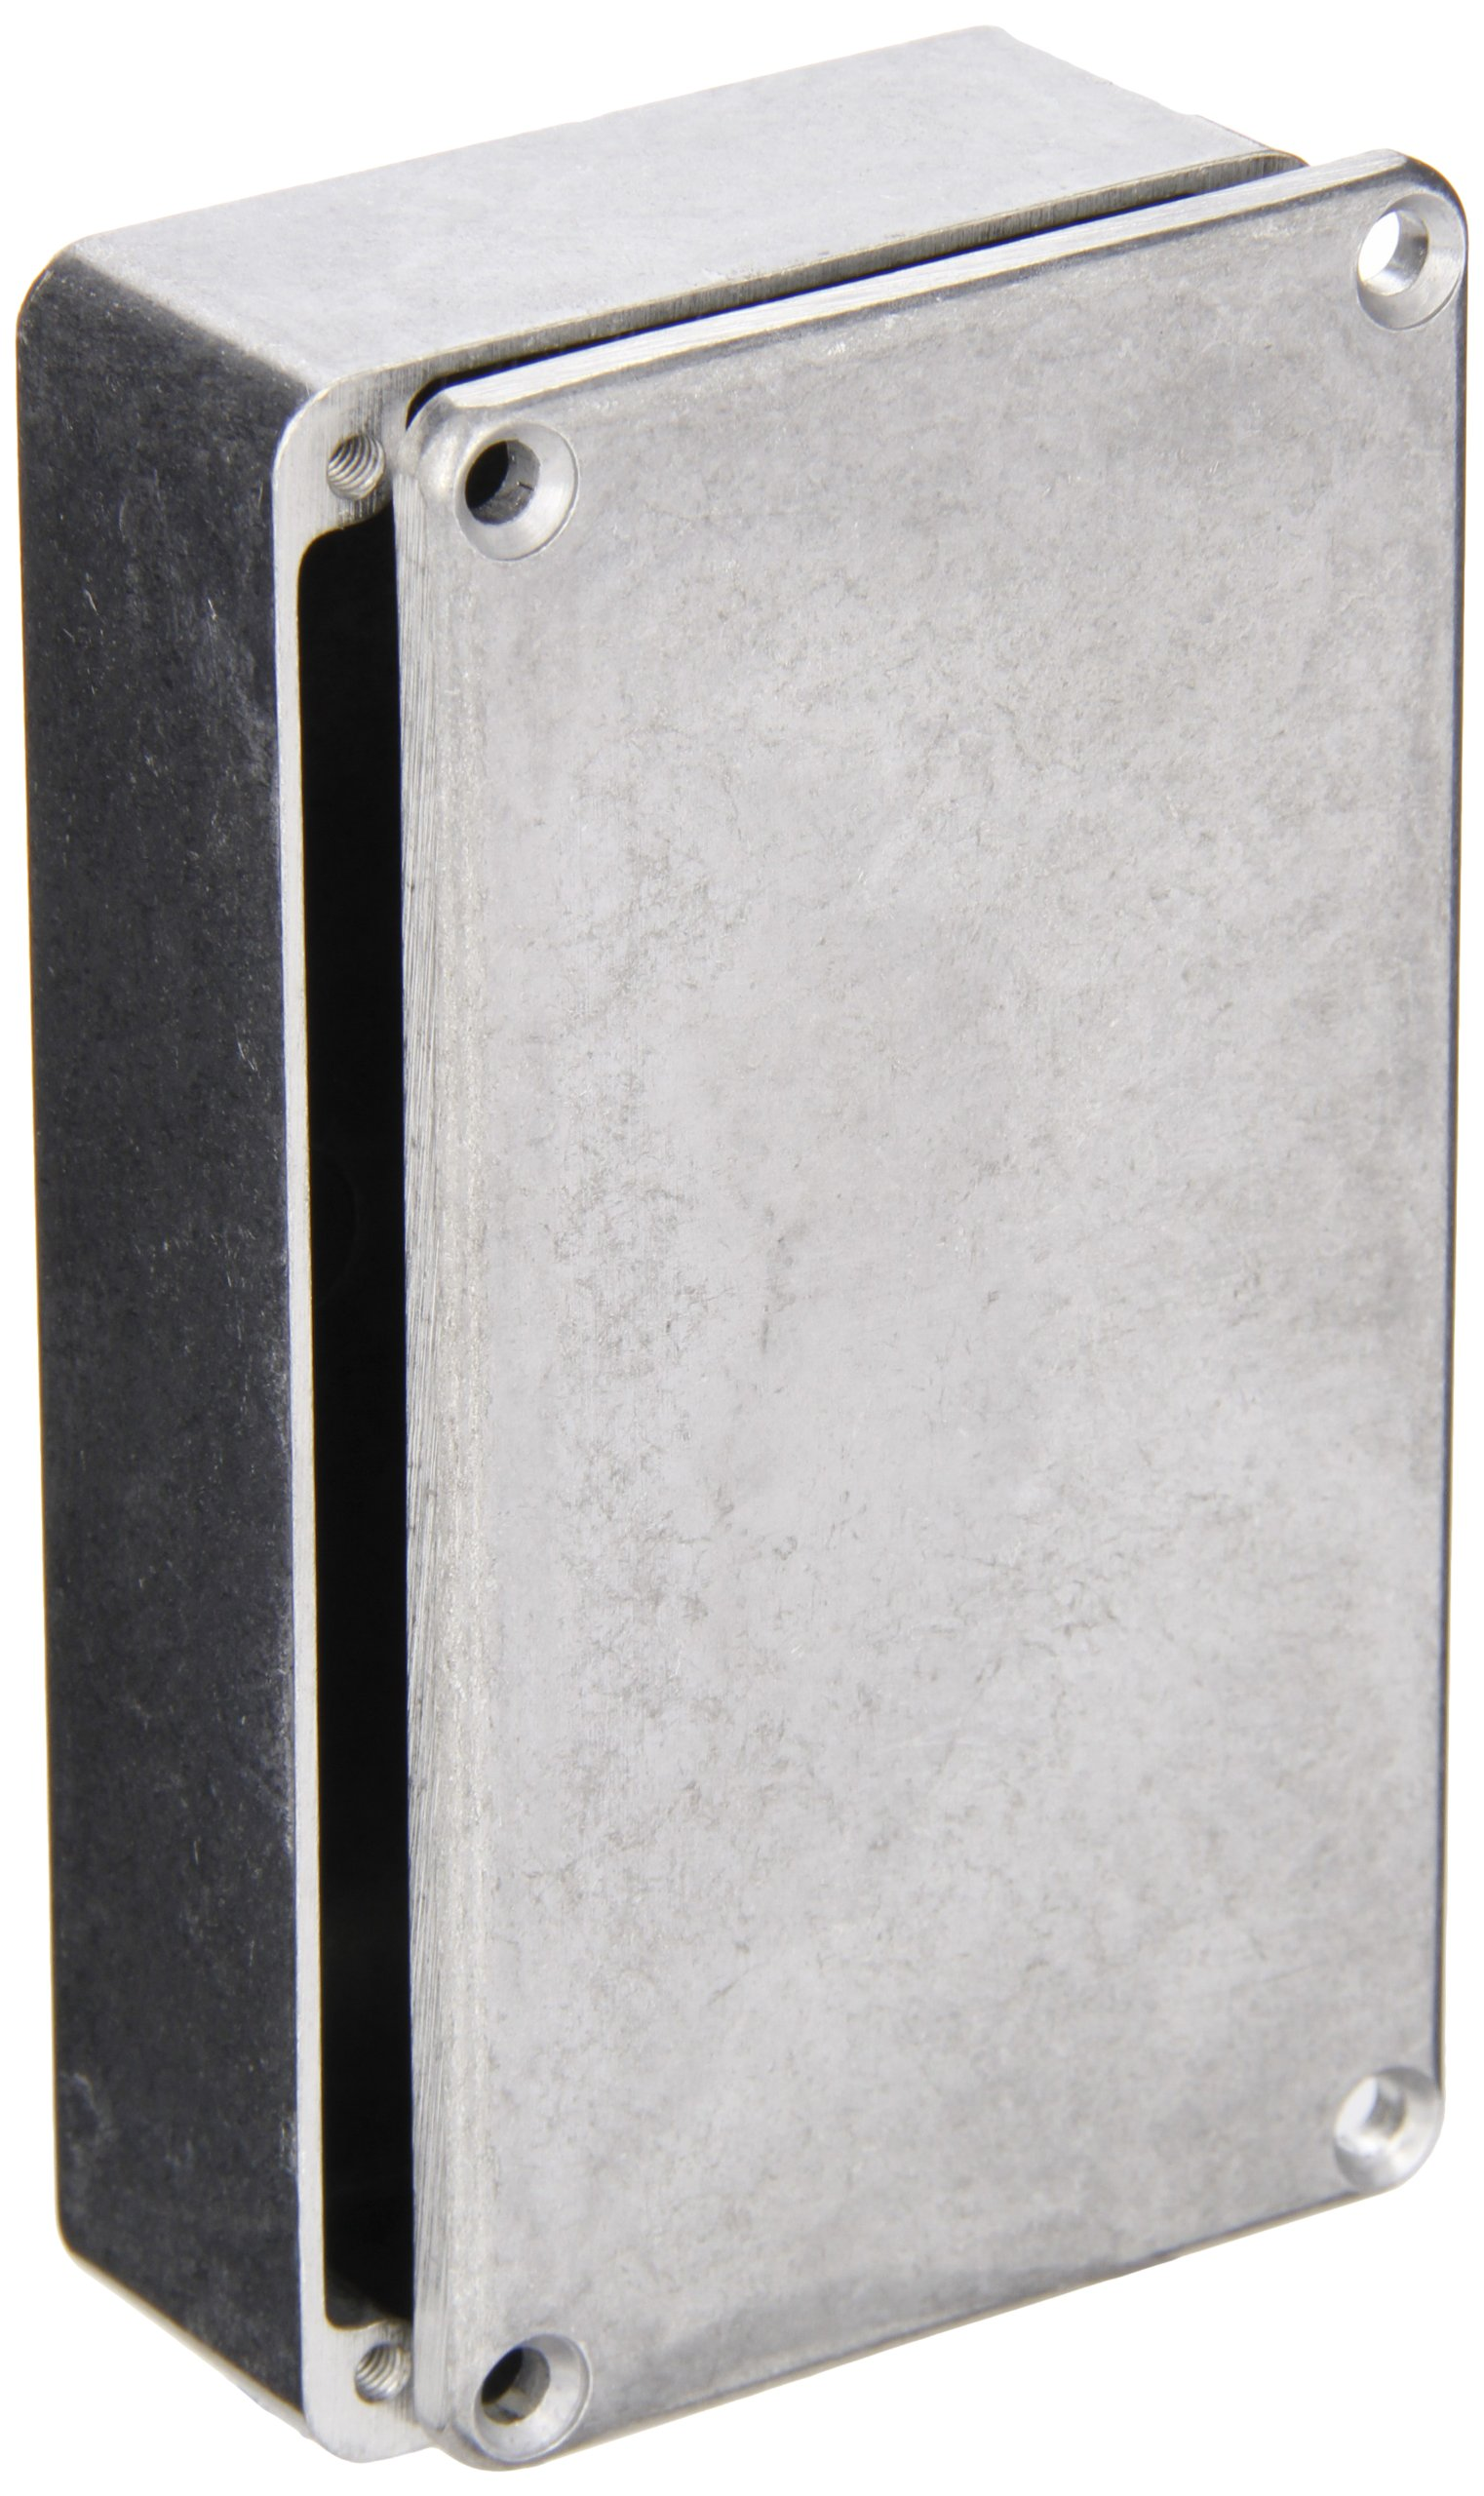 BUD Industries CN-5703 Die Cast Aluminum Enclosure, 4-1/2'' Length x 2-1/2'' Width x 1-7/32'' Height, Natural Finish